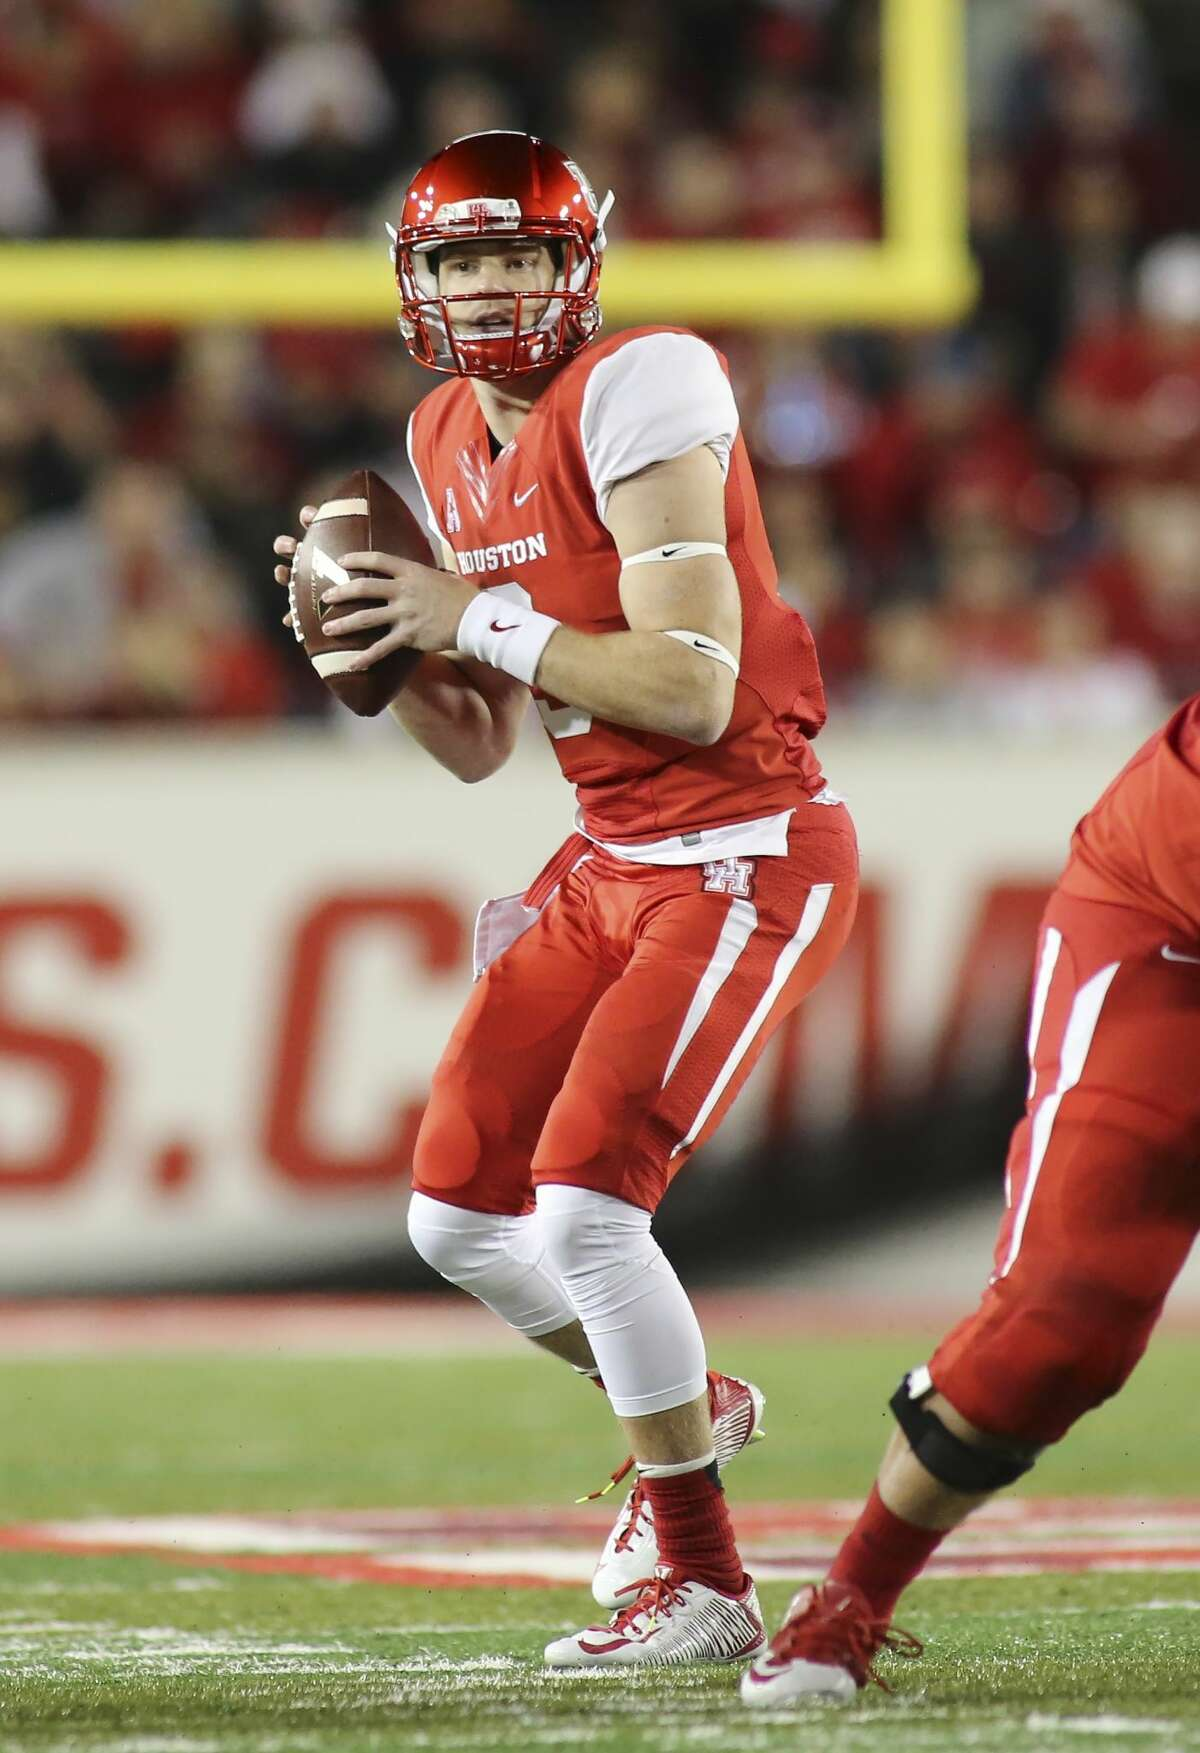 Either Kyle Postma (pictured) or Kyle Allen on Friday will be named starting quarterback for the University of Houston's season opener Saturday.